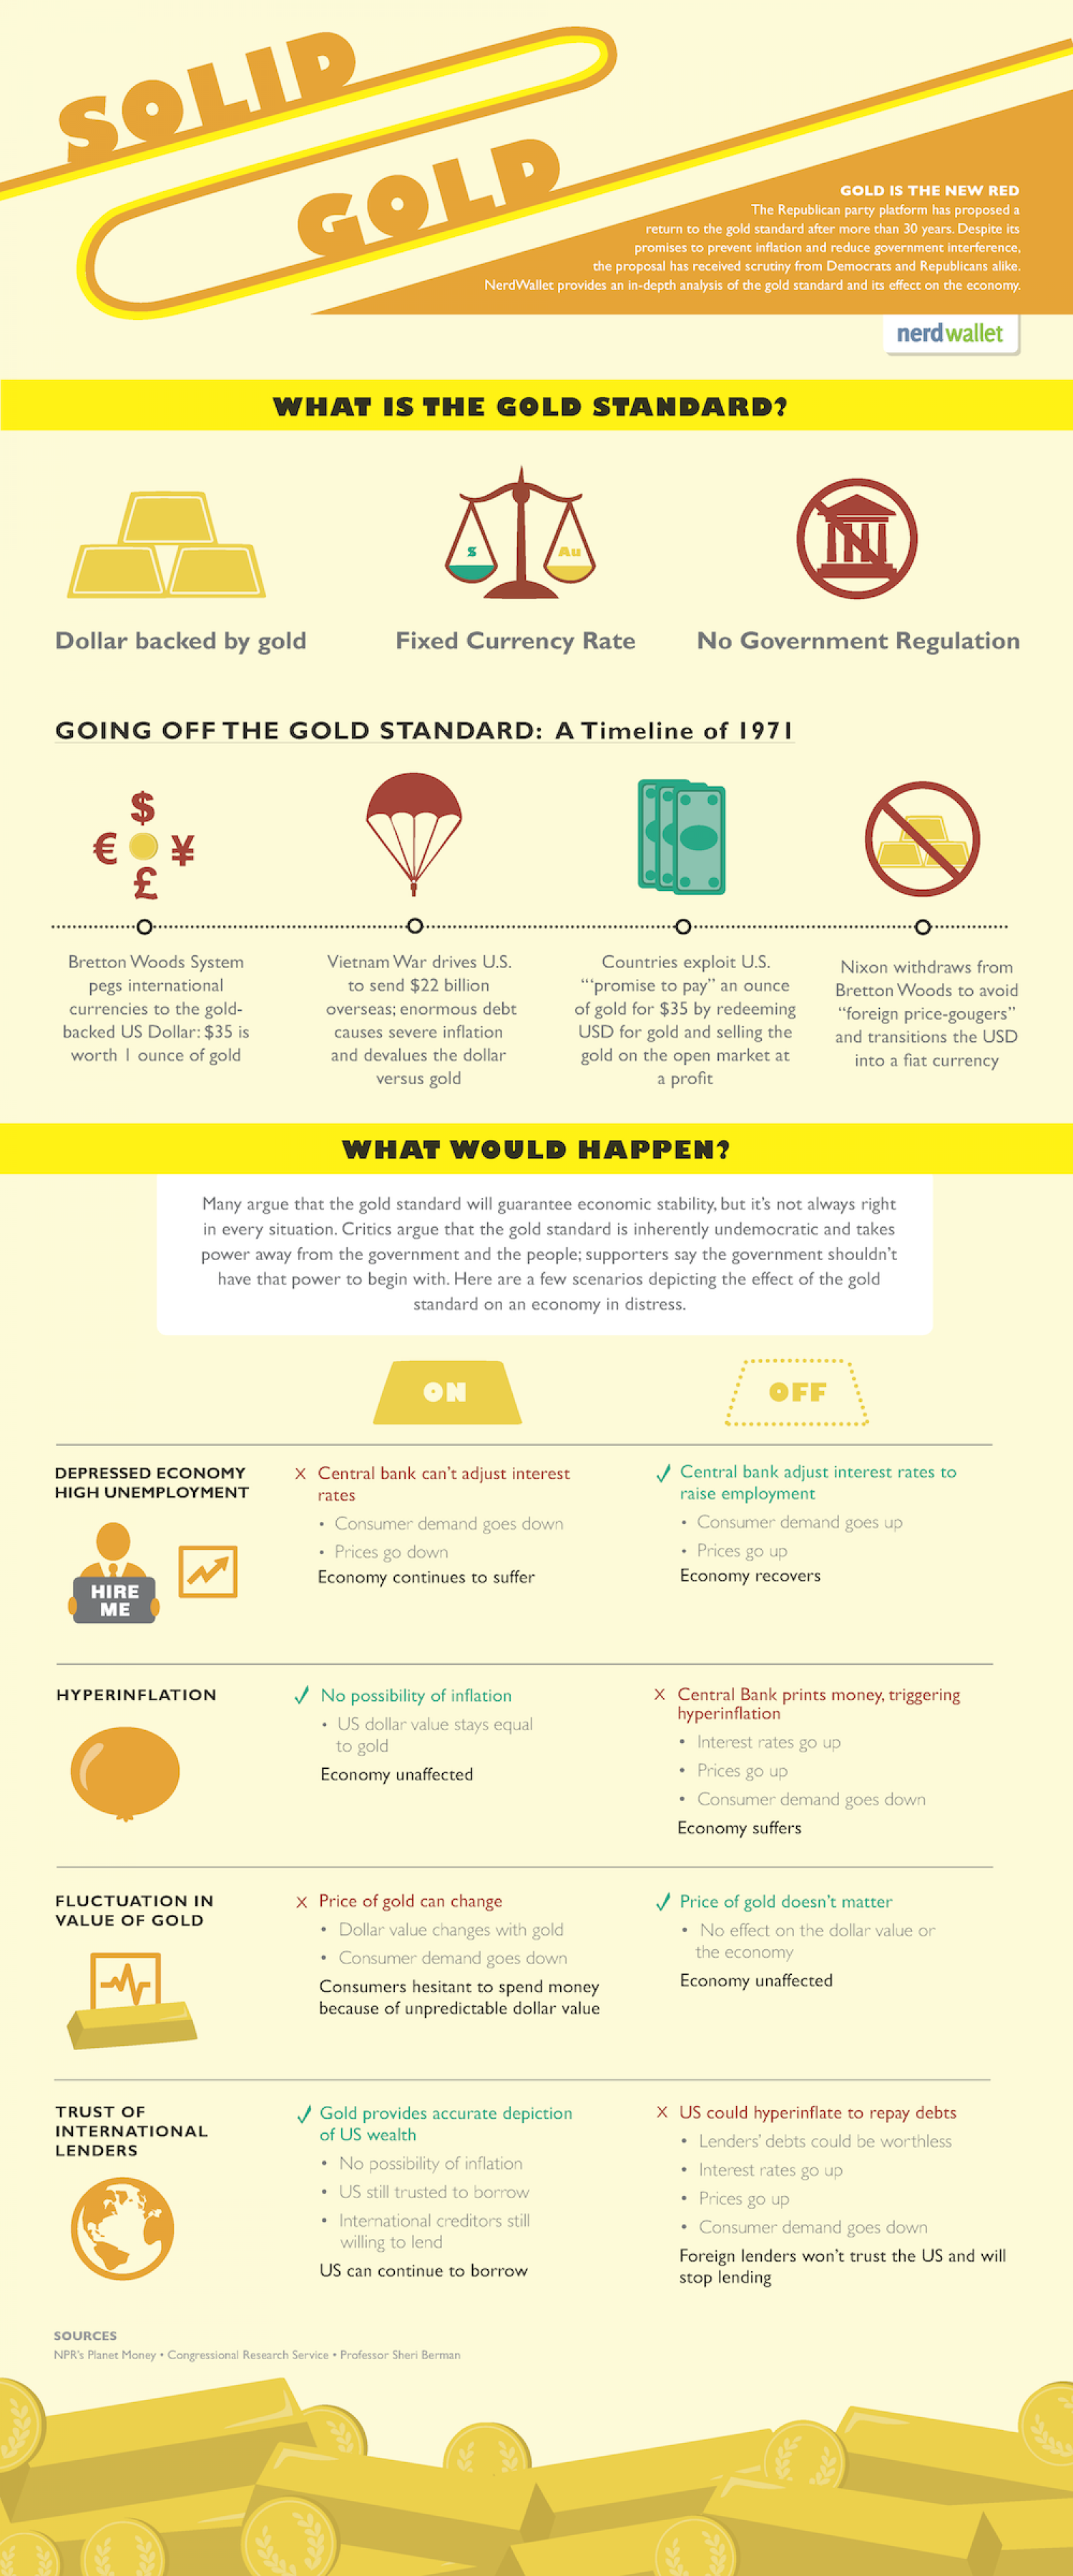 Solid Gold: The Gold Standard Infographic